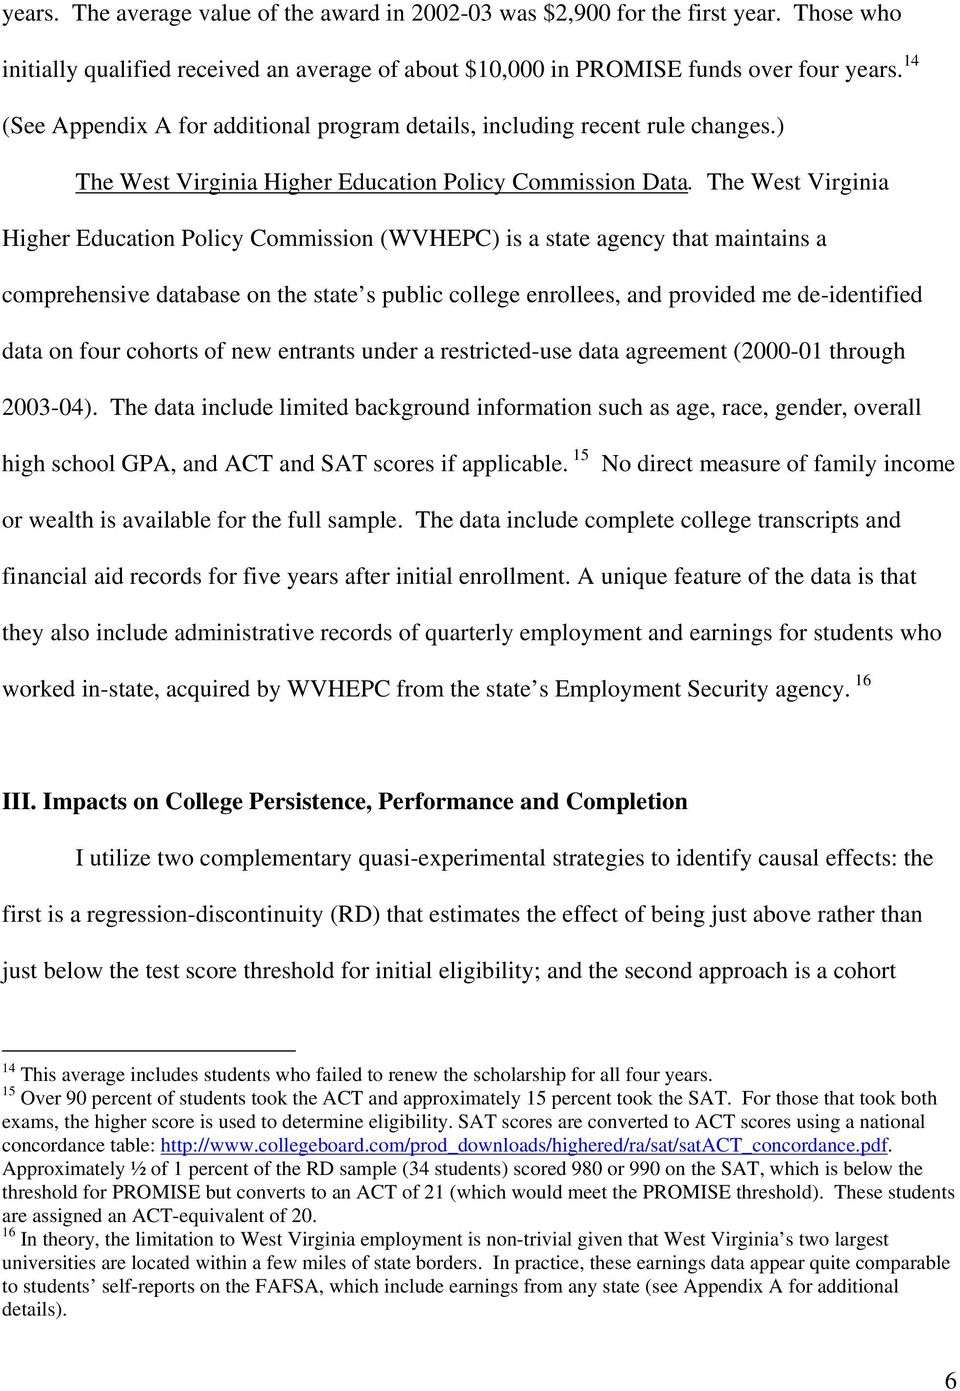 The West Virginia Higher Education Policy Commission (WVHEPC) is a state agency that maintains a comprehensive database on the state s public college enrollees, and provided me de-identified data on